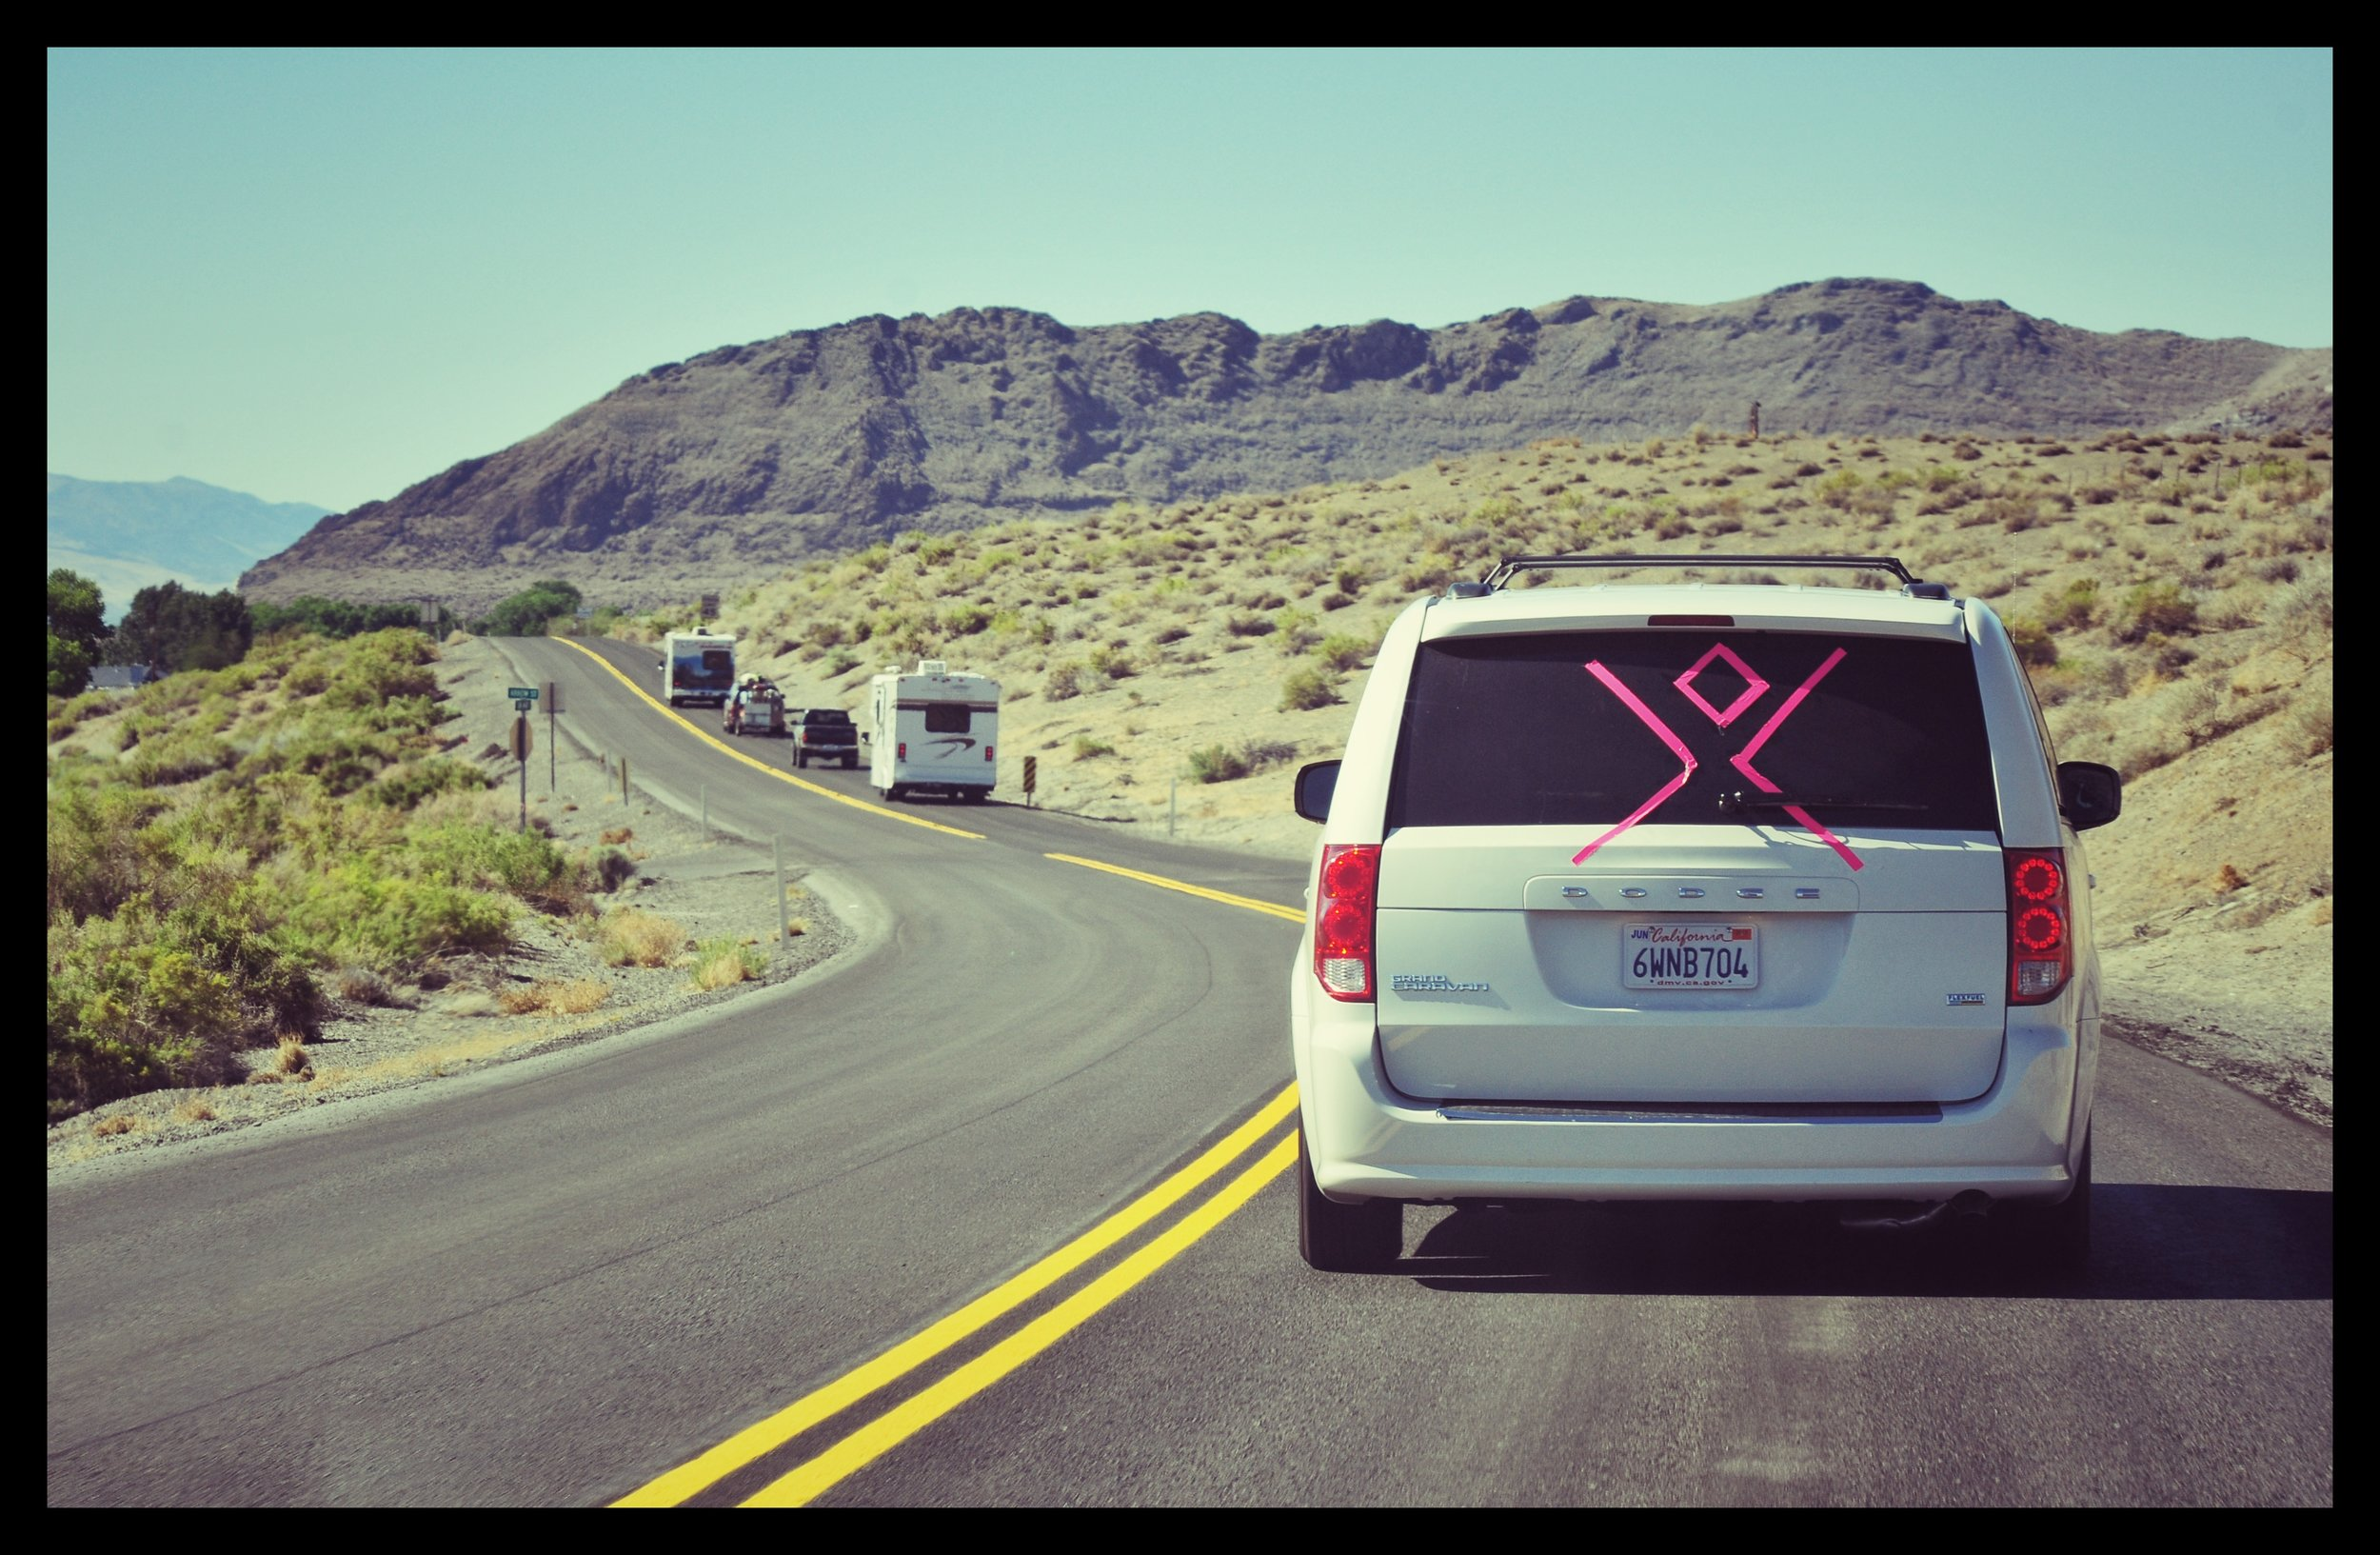 Lost on the Road? - As you begin to get closer to the burn, you will notice the man on different vans and caravans. An art car on a trailer is a good giveaway. Usually these folks know where they are going...